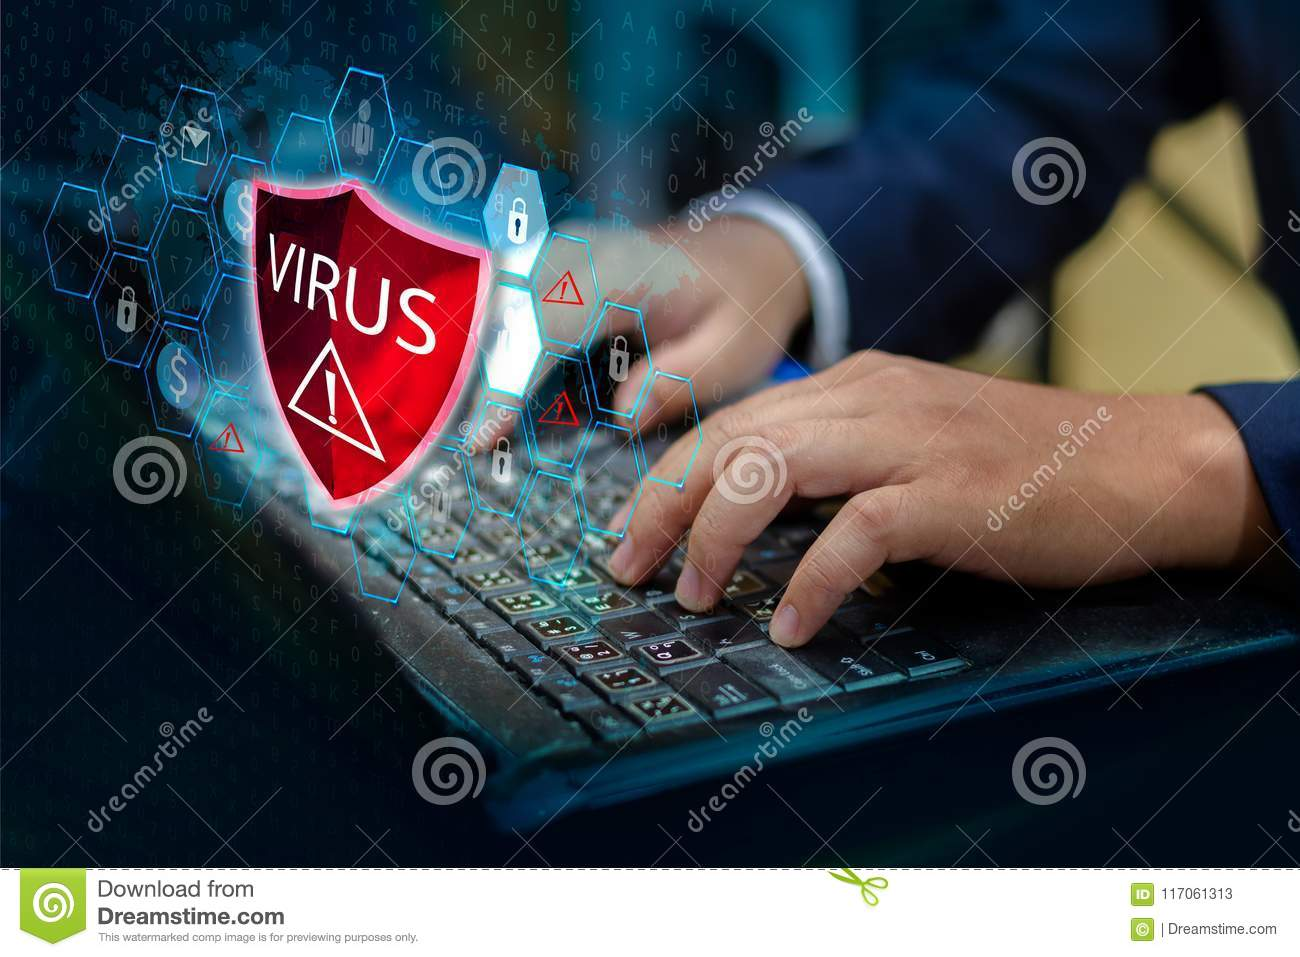 Press enter button on the keyboard computer Protective shield virus red Exclamation Warning Caution Computer in dark with word vir